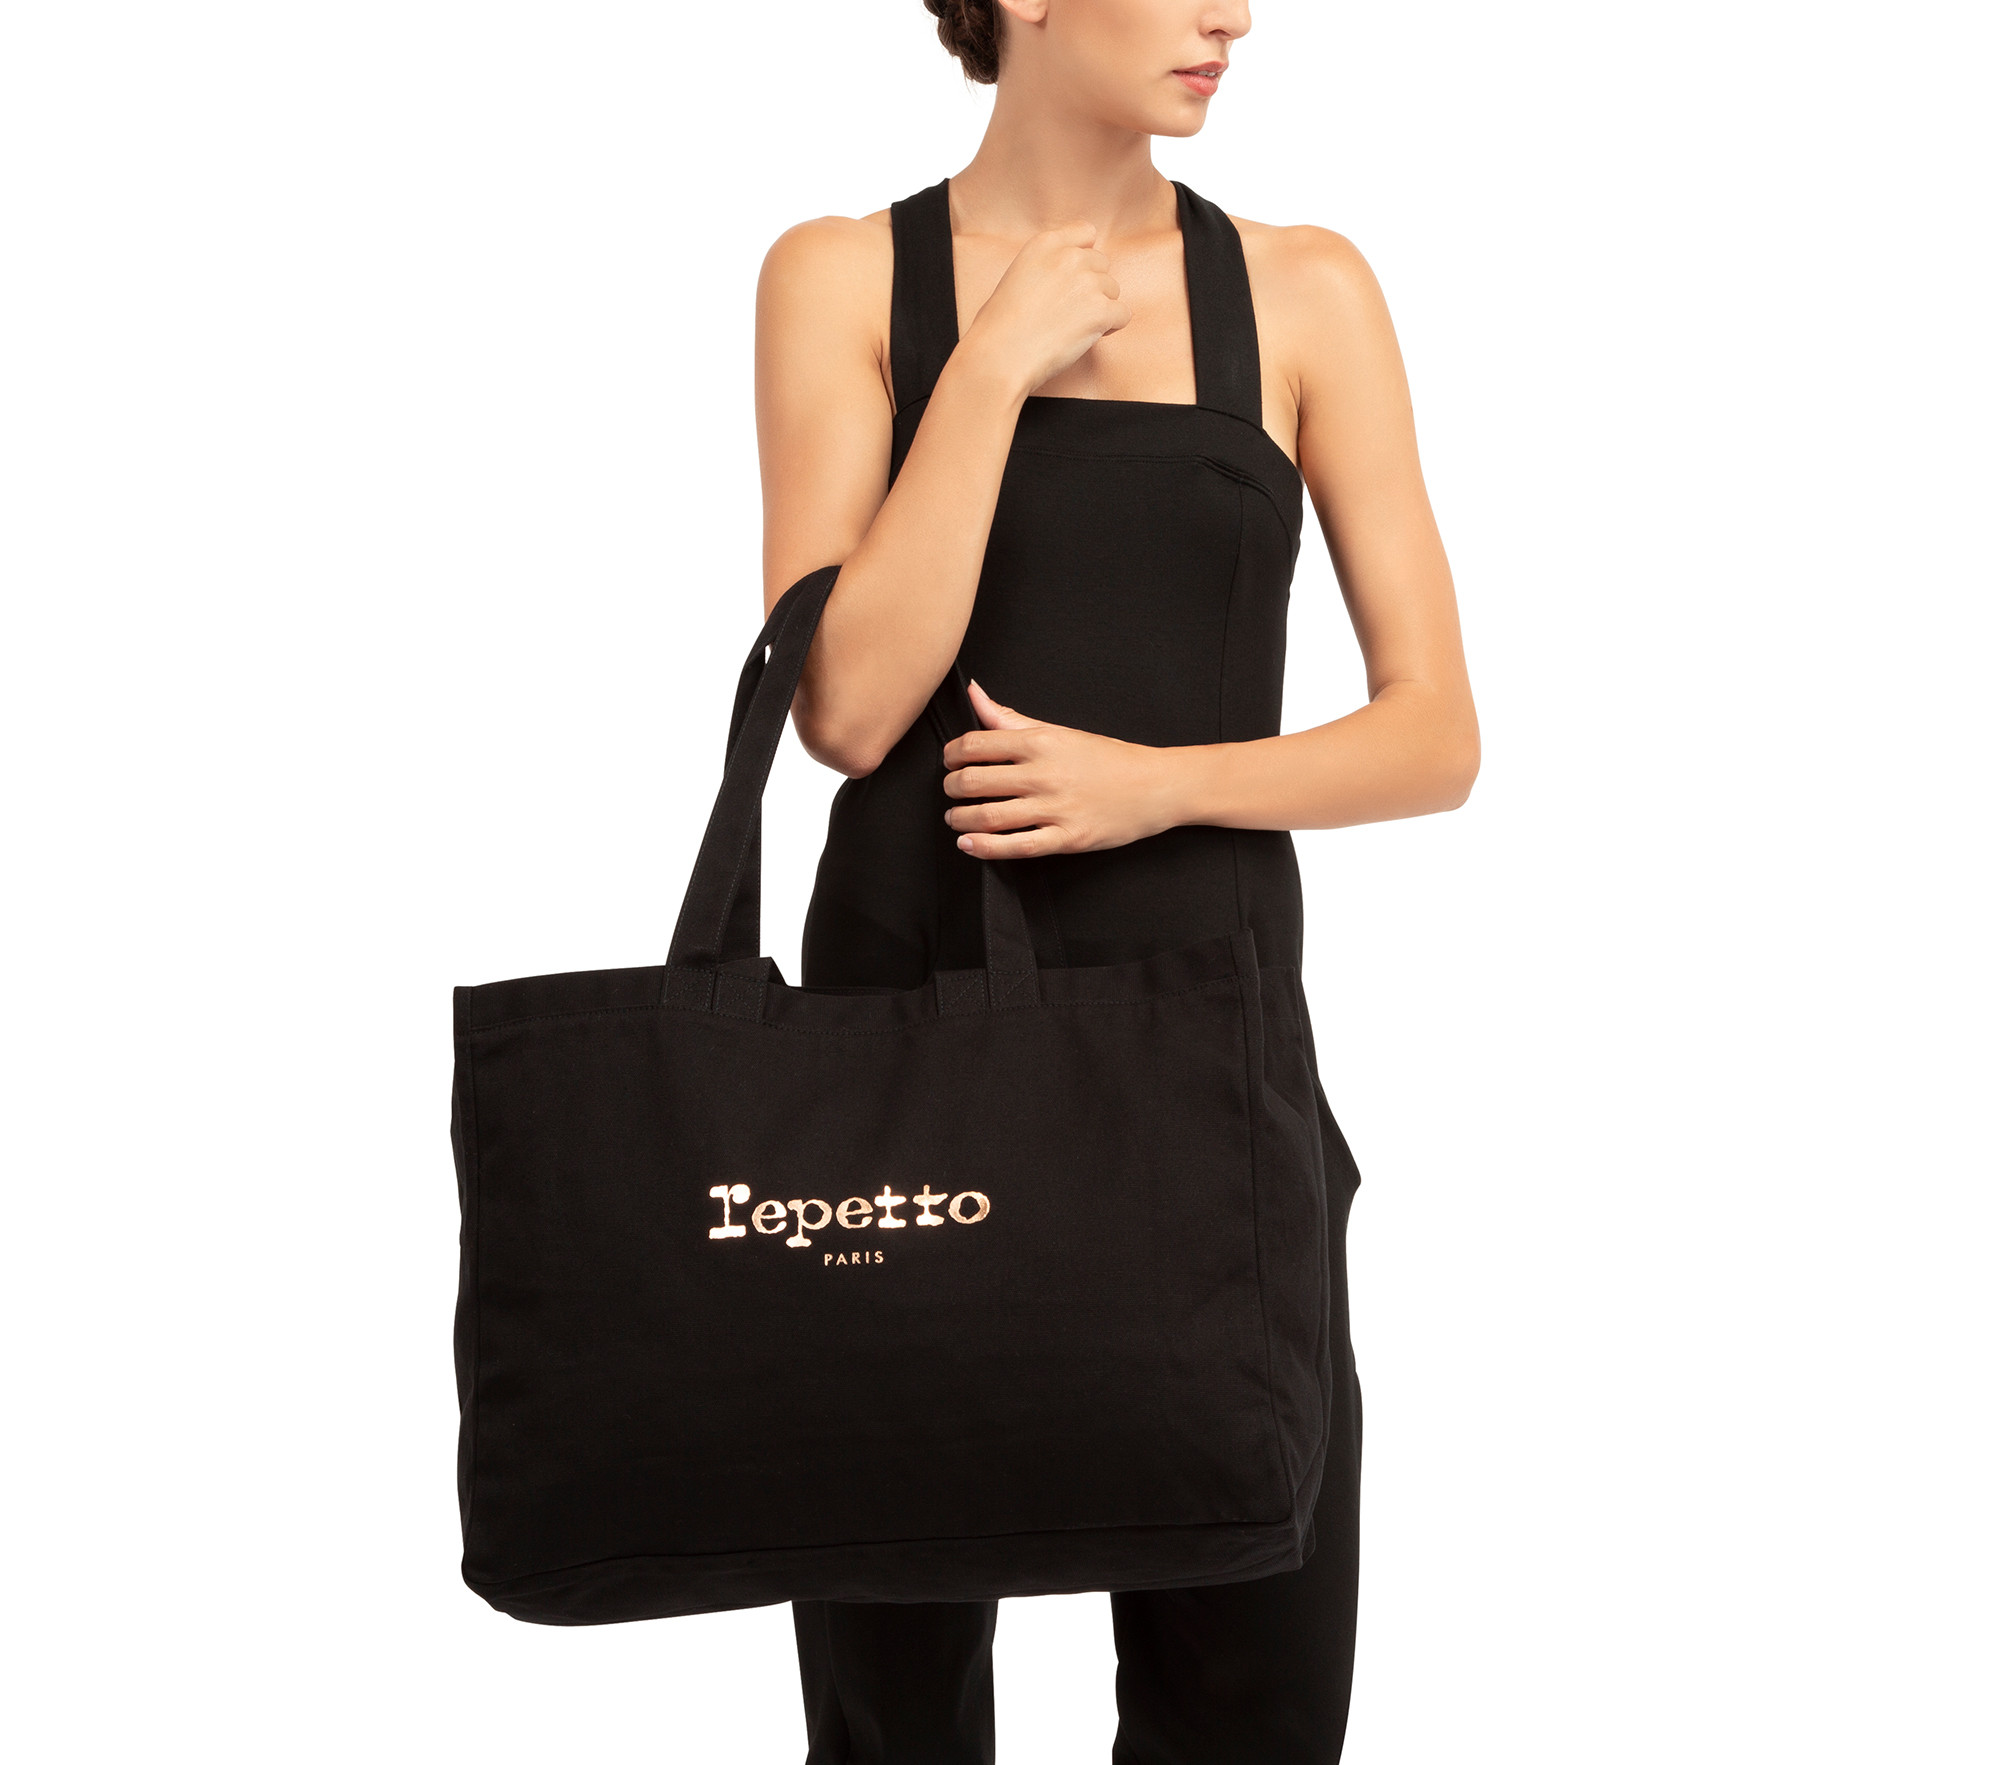 Danseuse shopping bag